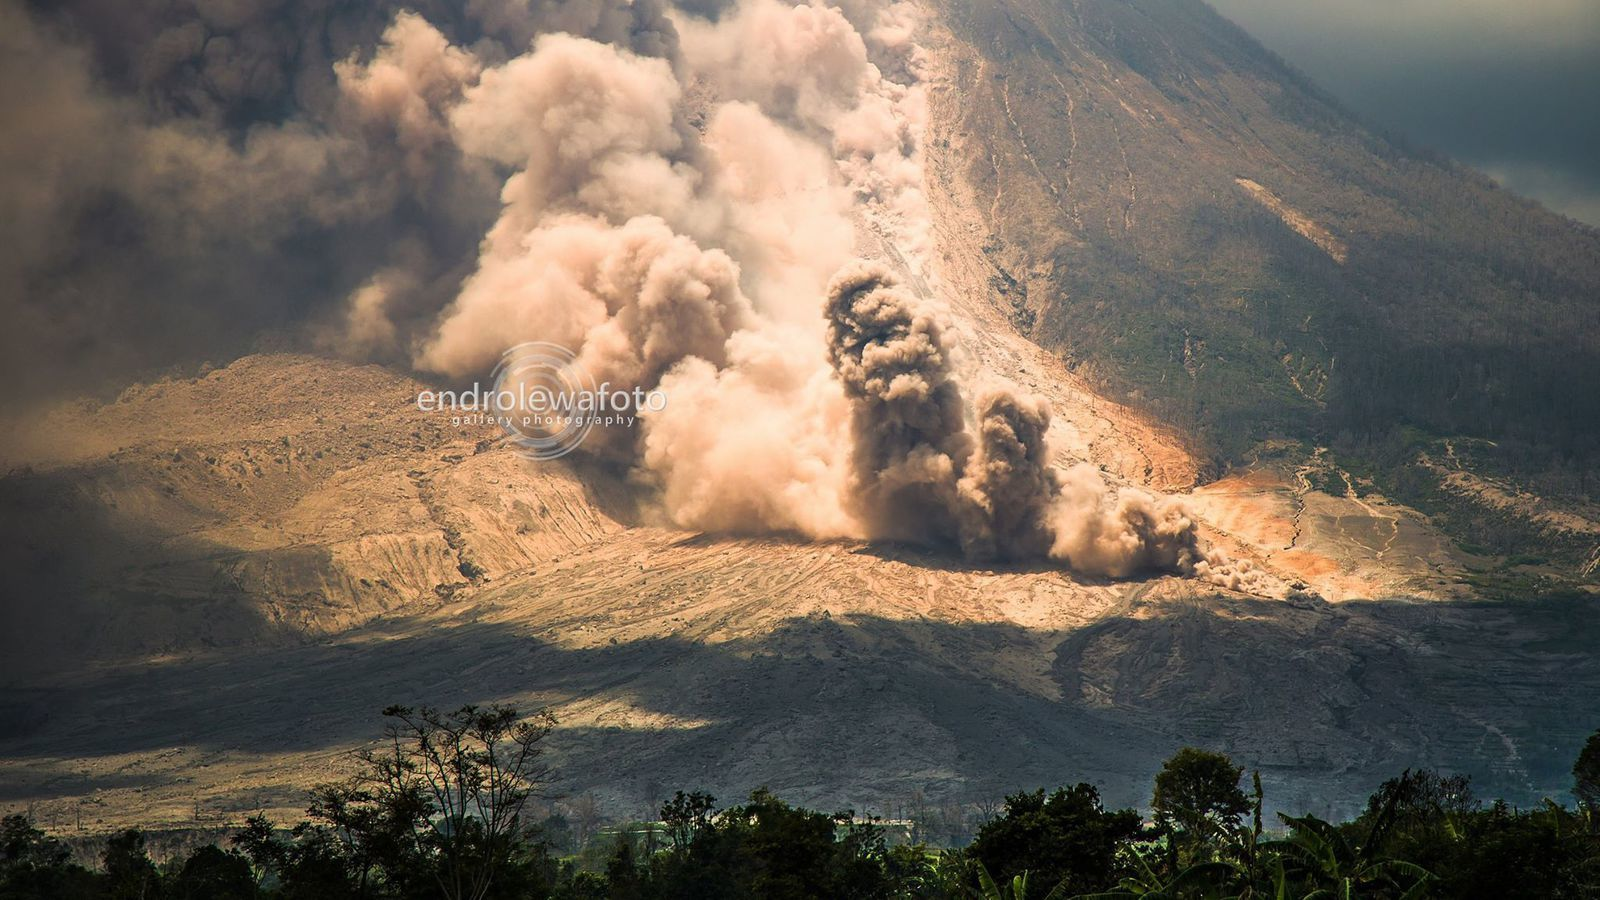 Sinabung - Coulée Pyroclastique du 23.02.2016 / 12h37 - photo Endrolewa